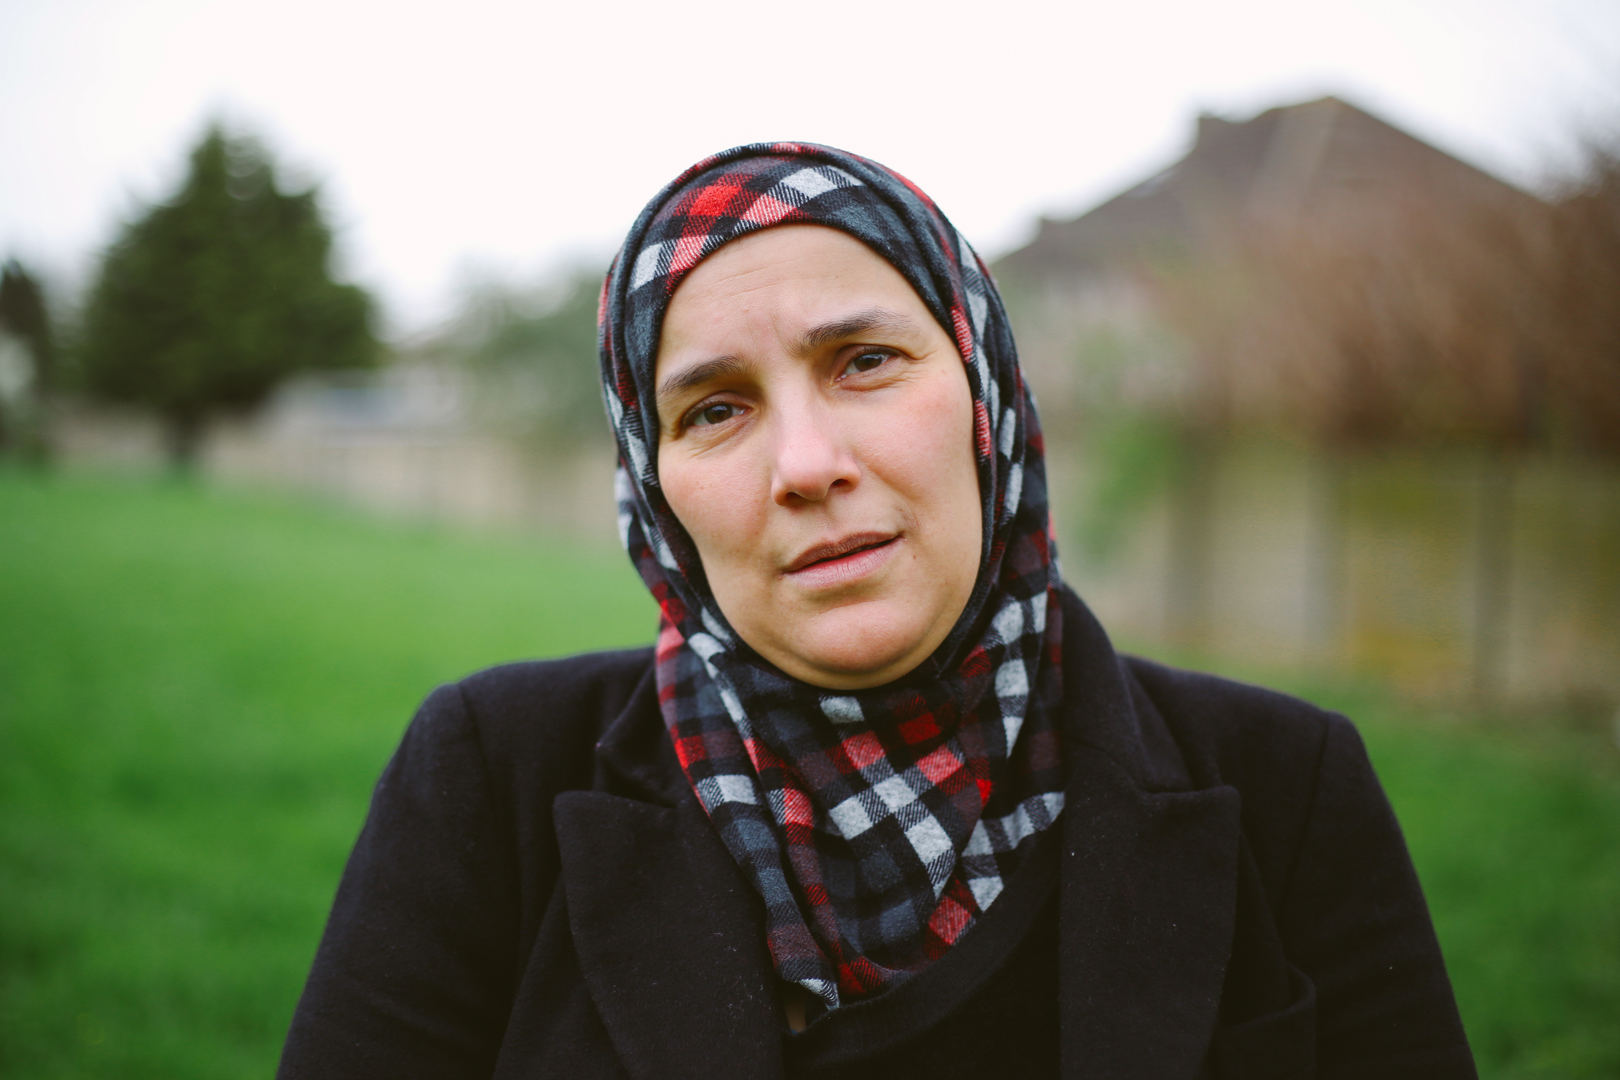 This is Imane Bakdaliah, she has been in the UK for 4 years.